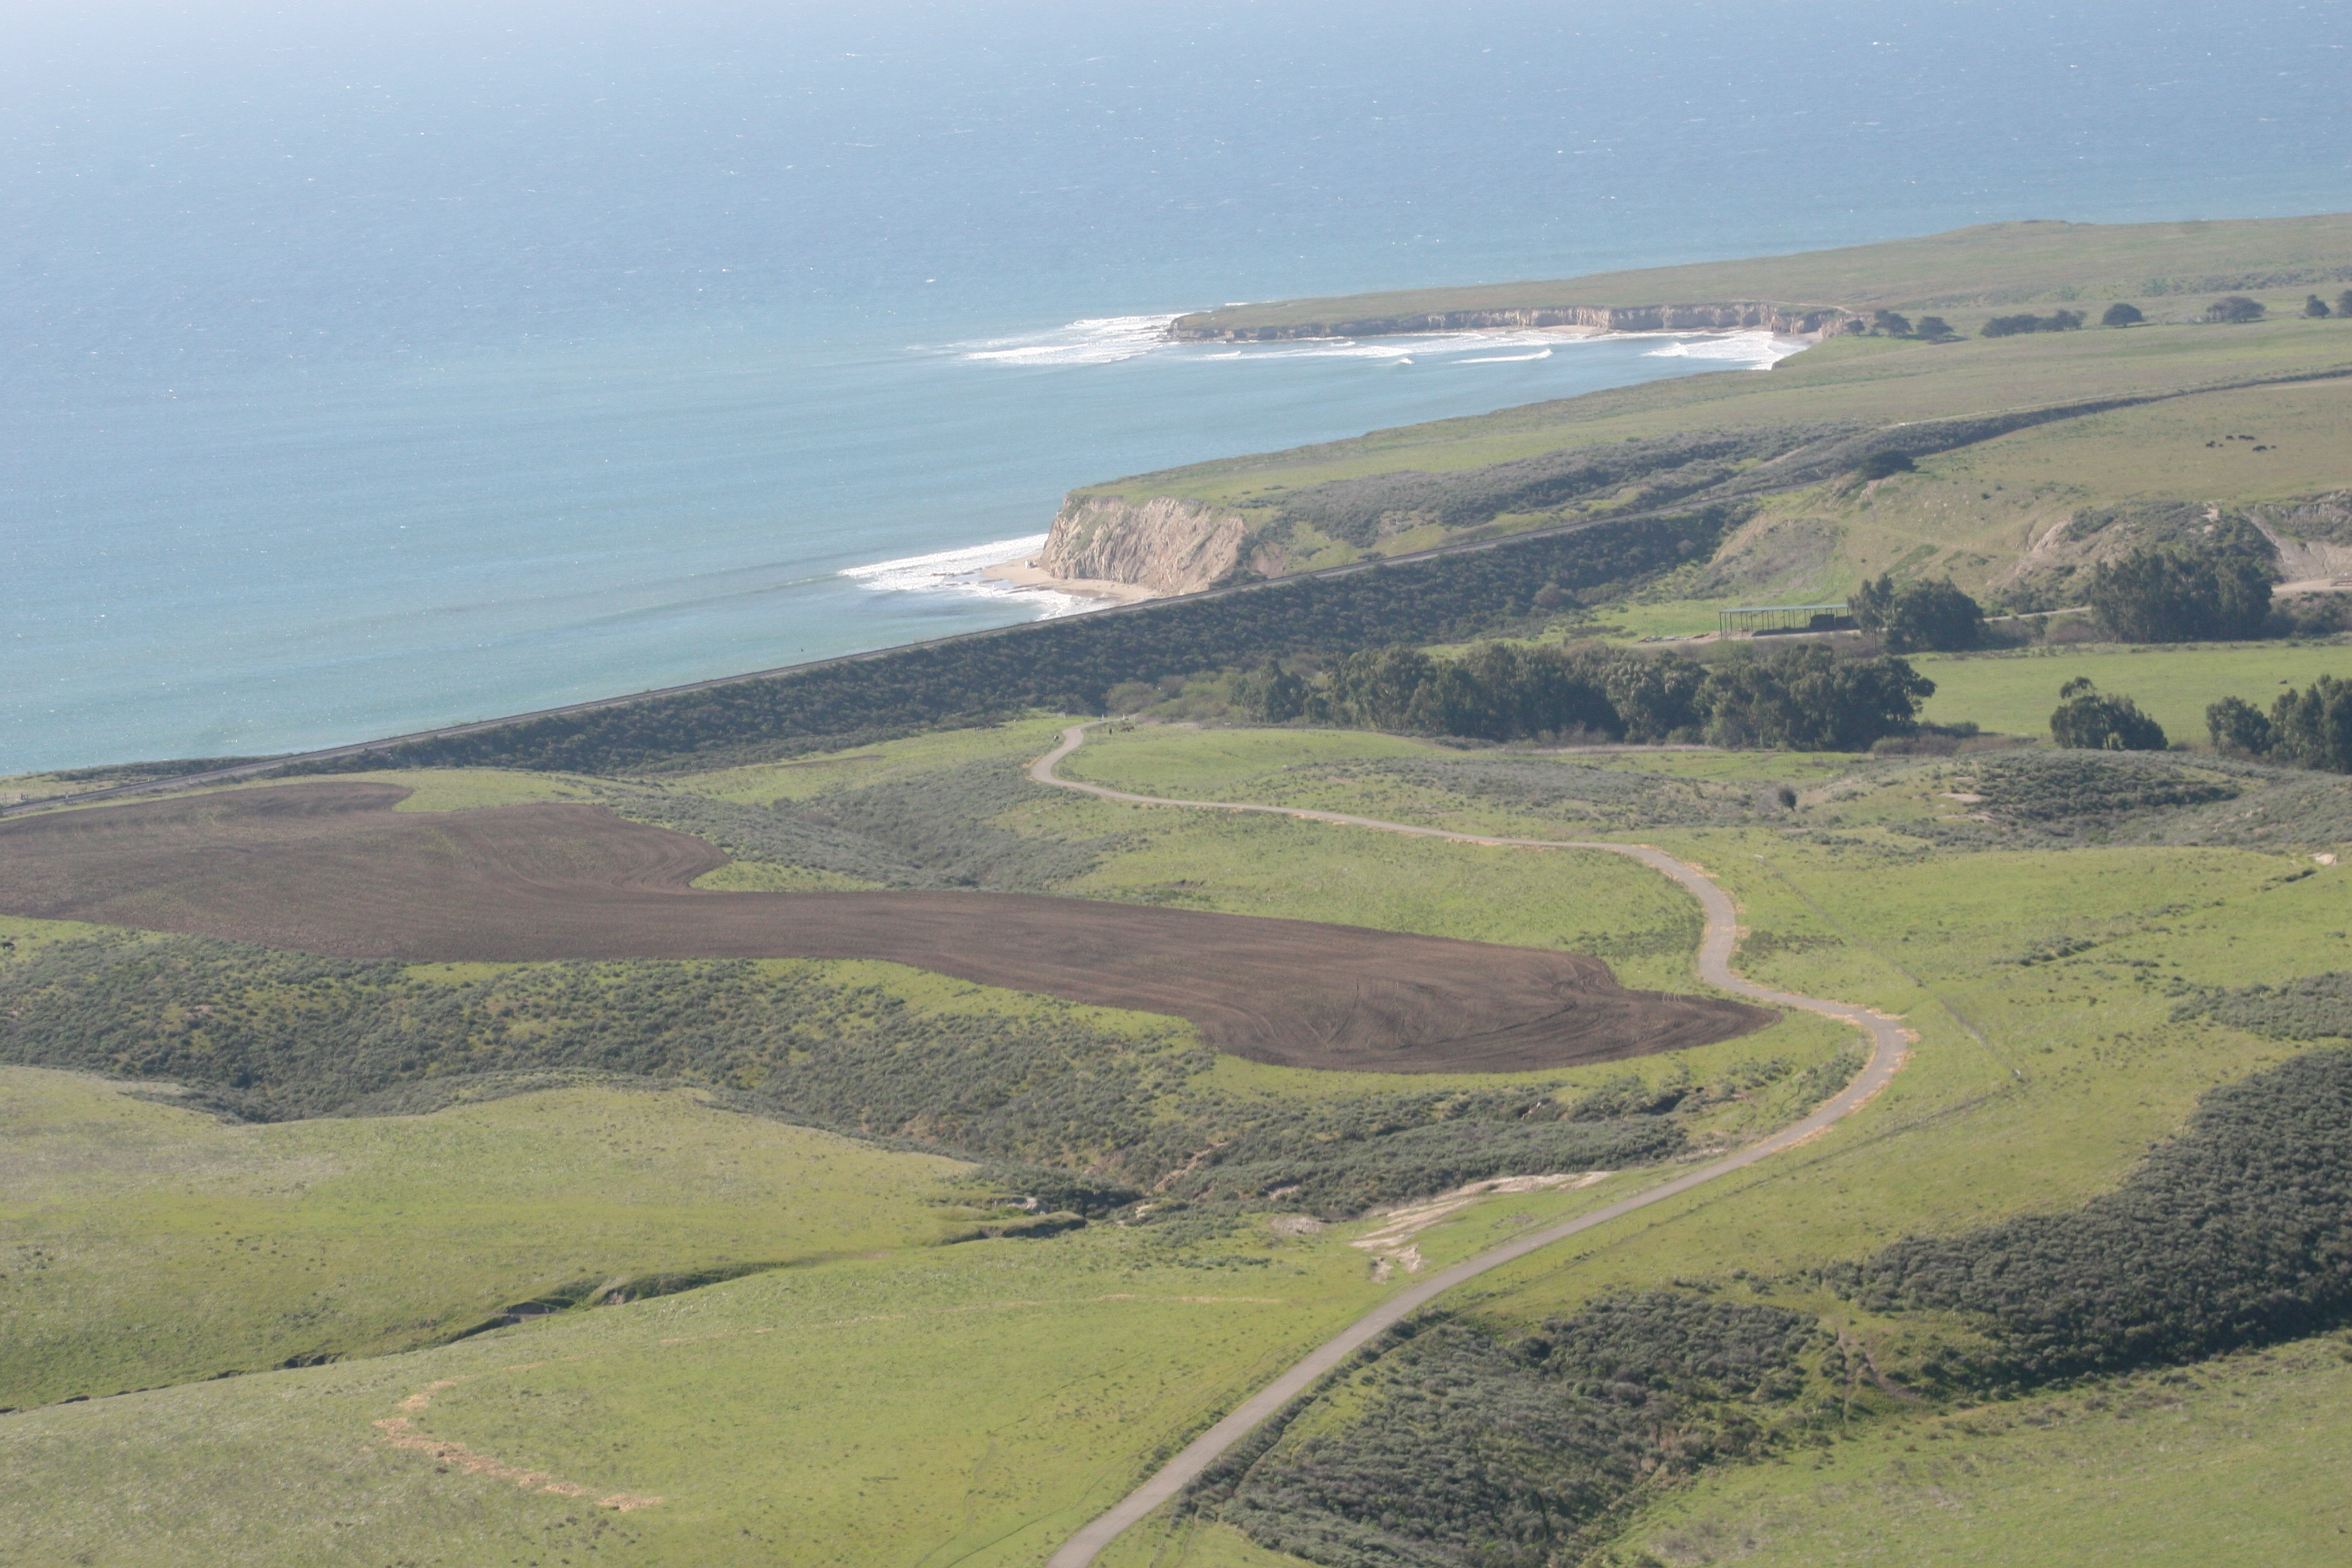 Bixby_Ranch__illegal_grading__aerial_by_Mike_Lunsford.JPG